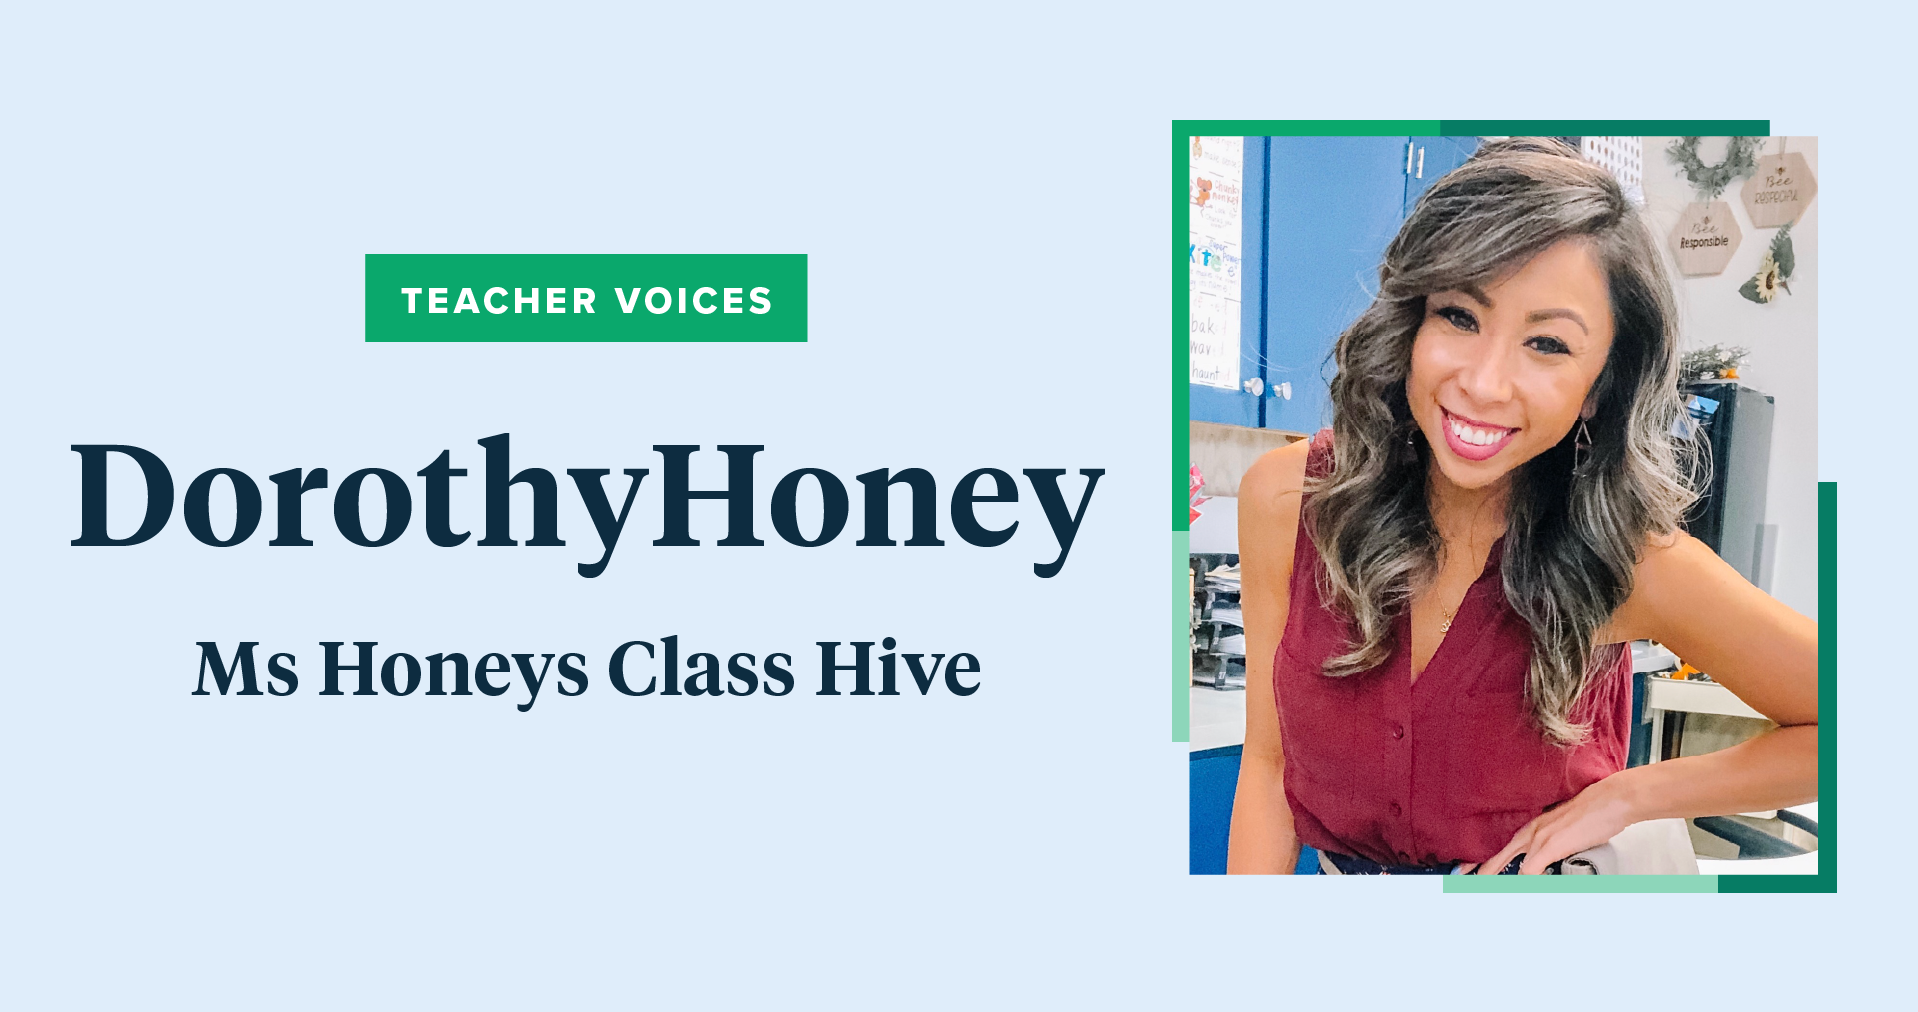 Teacher Voices DorothyHoney Ms Honeys Class Hive